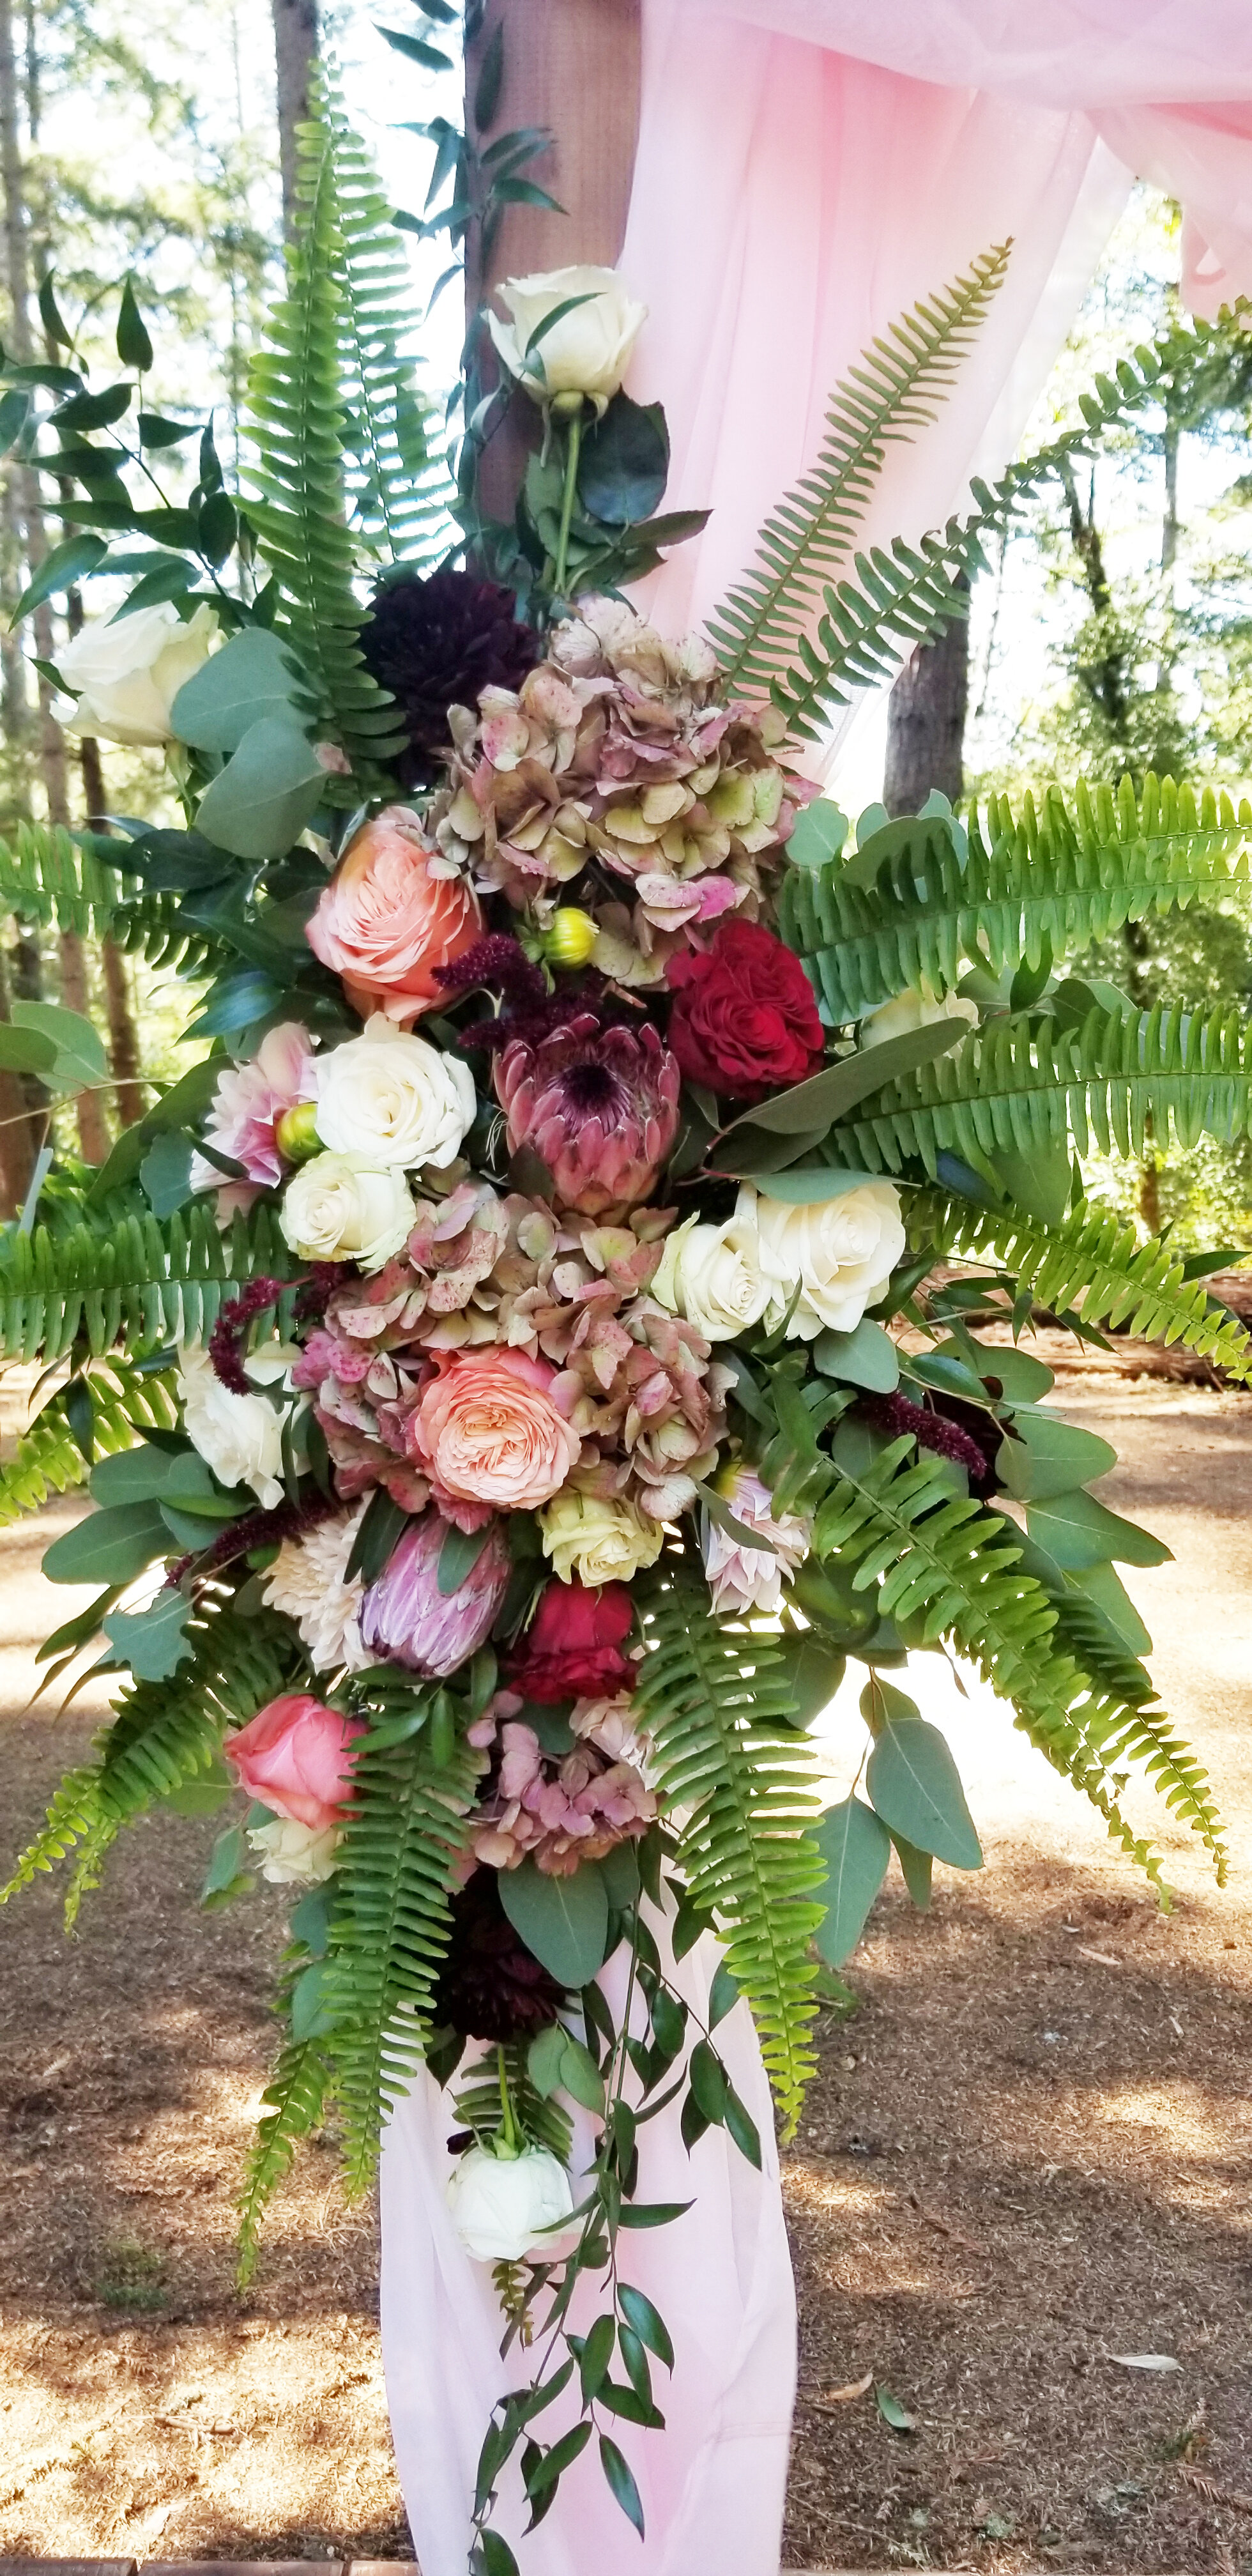 Wedding arch floral, lush fall colors in blush, mauve, deep burgundy and cream featuring ranunculus, protea, English roses, ruscus and fern.